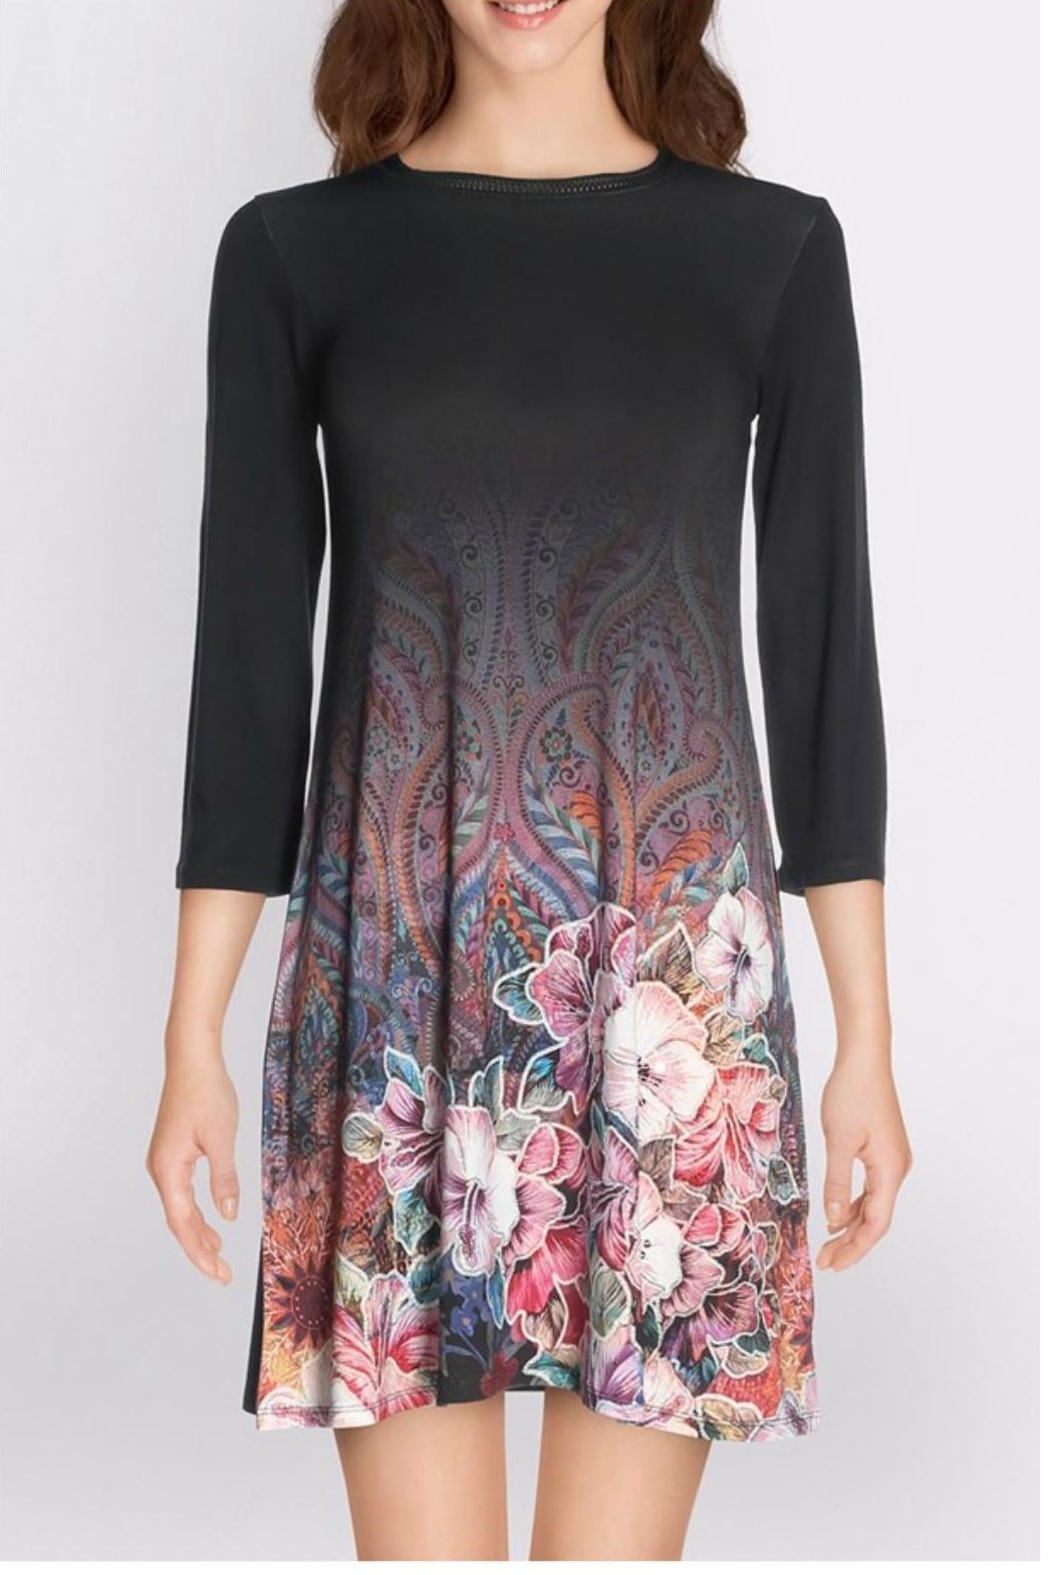 Desigual - Spain Black Floral Dress - Main Image